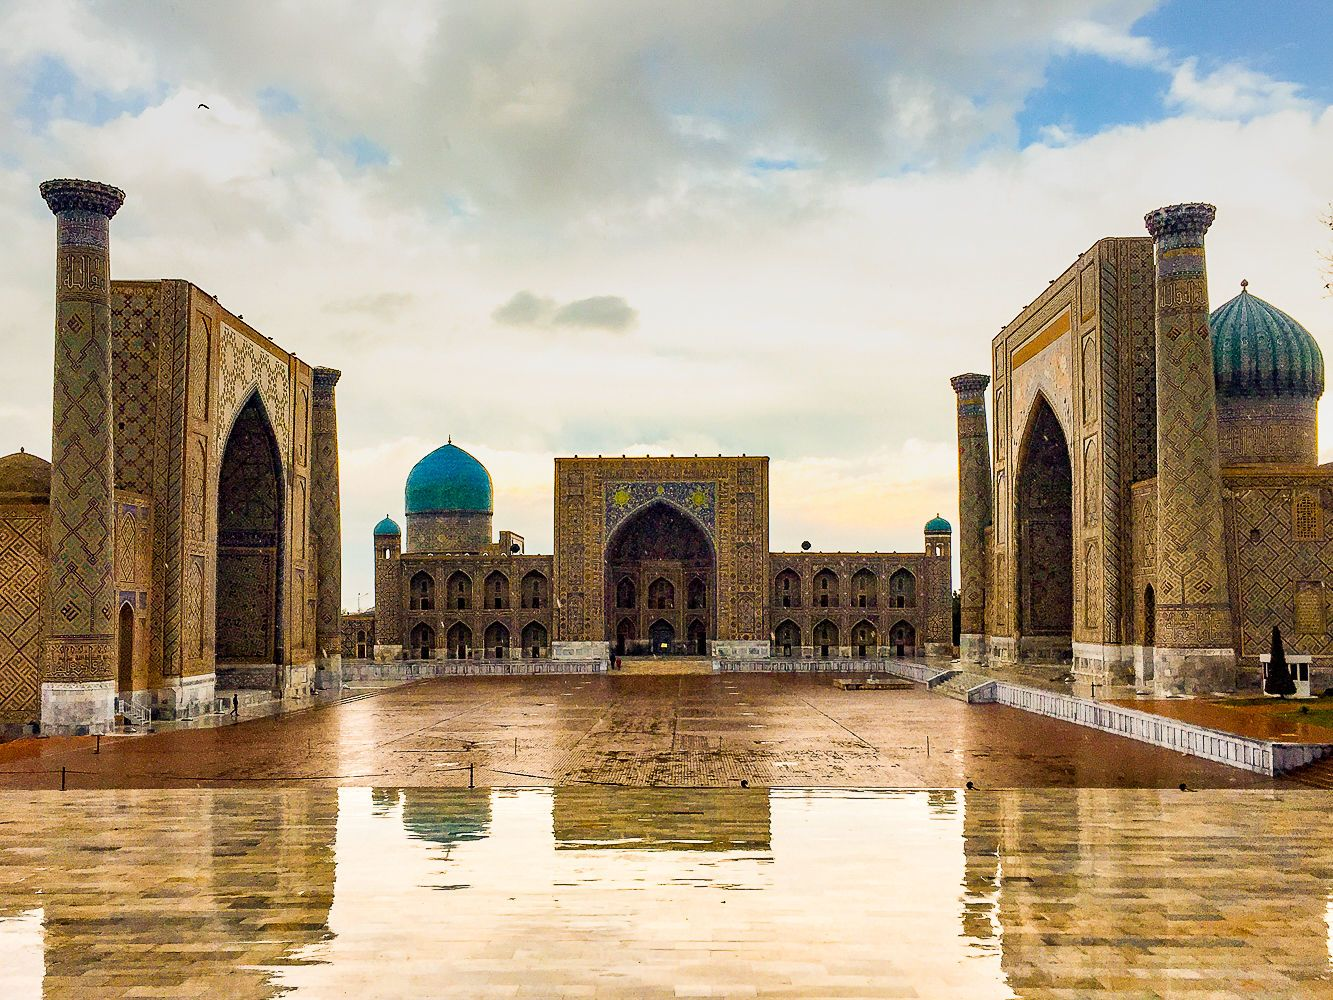 Registan square in Samarkand visited in Central Asian Silk Road Tours